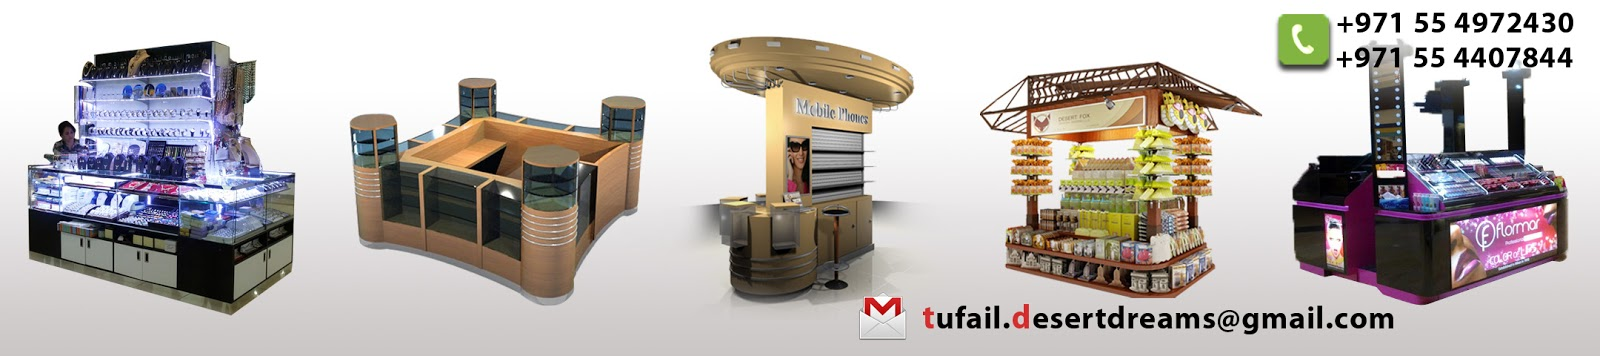 Mall Kiosk Design Food Beverage Coffee Candy Snack Jewelry Mobile Phone Sun Gl Cigar